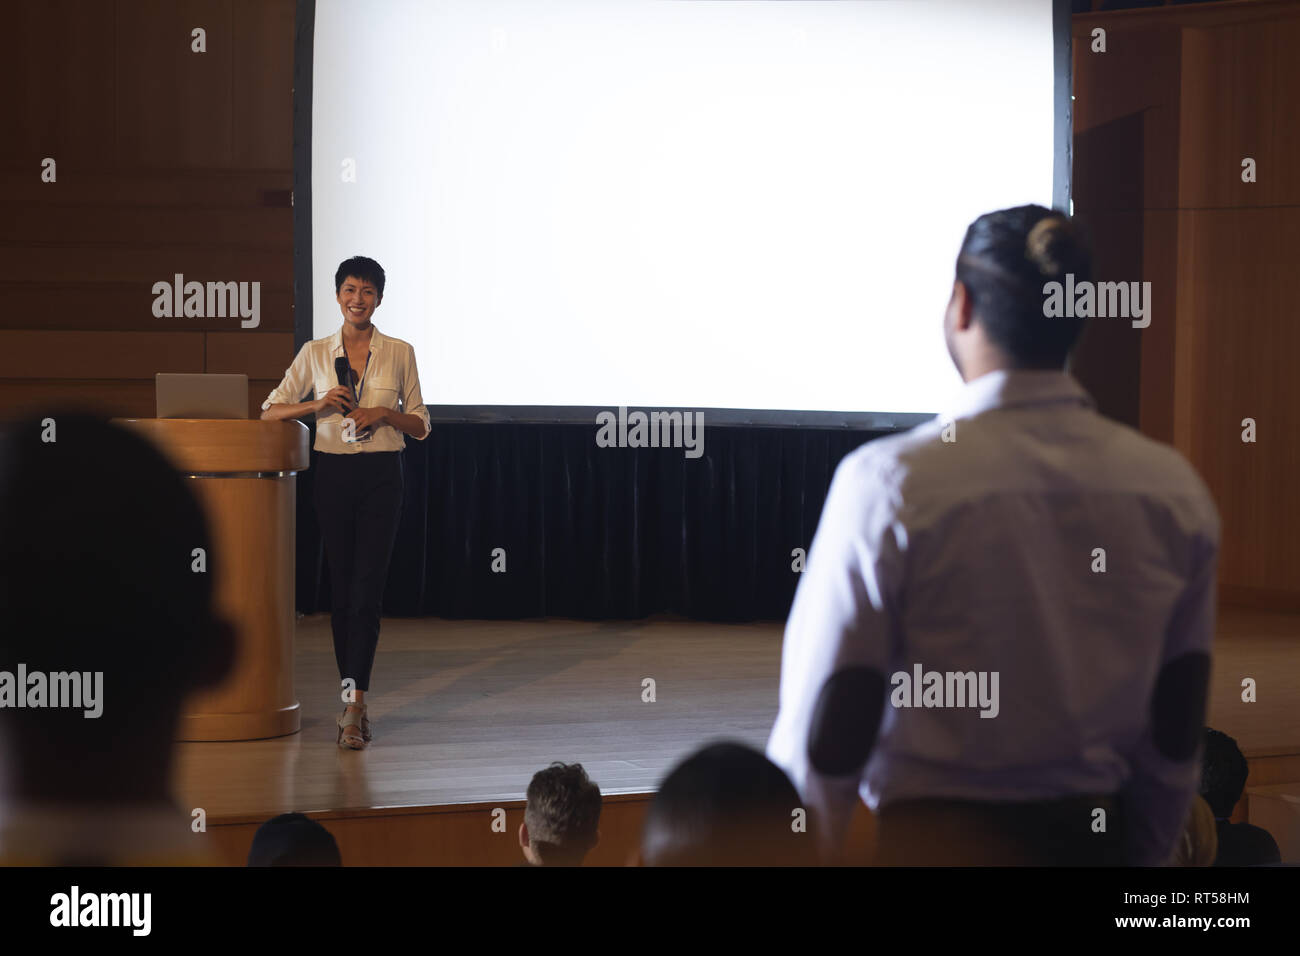 Woman from the audience standing and asking query in the auditorium - Stock Image